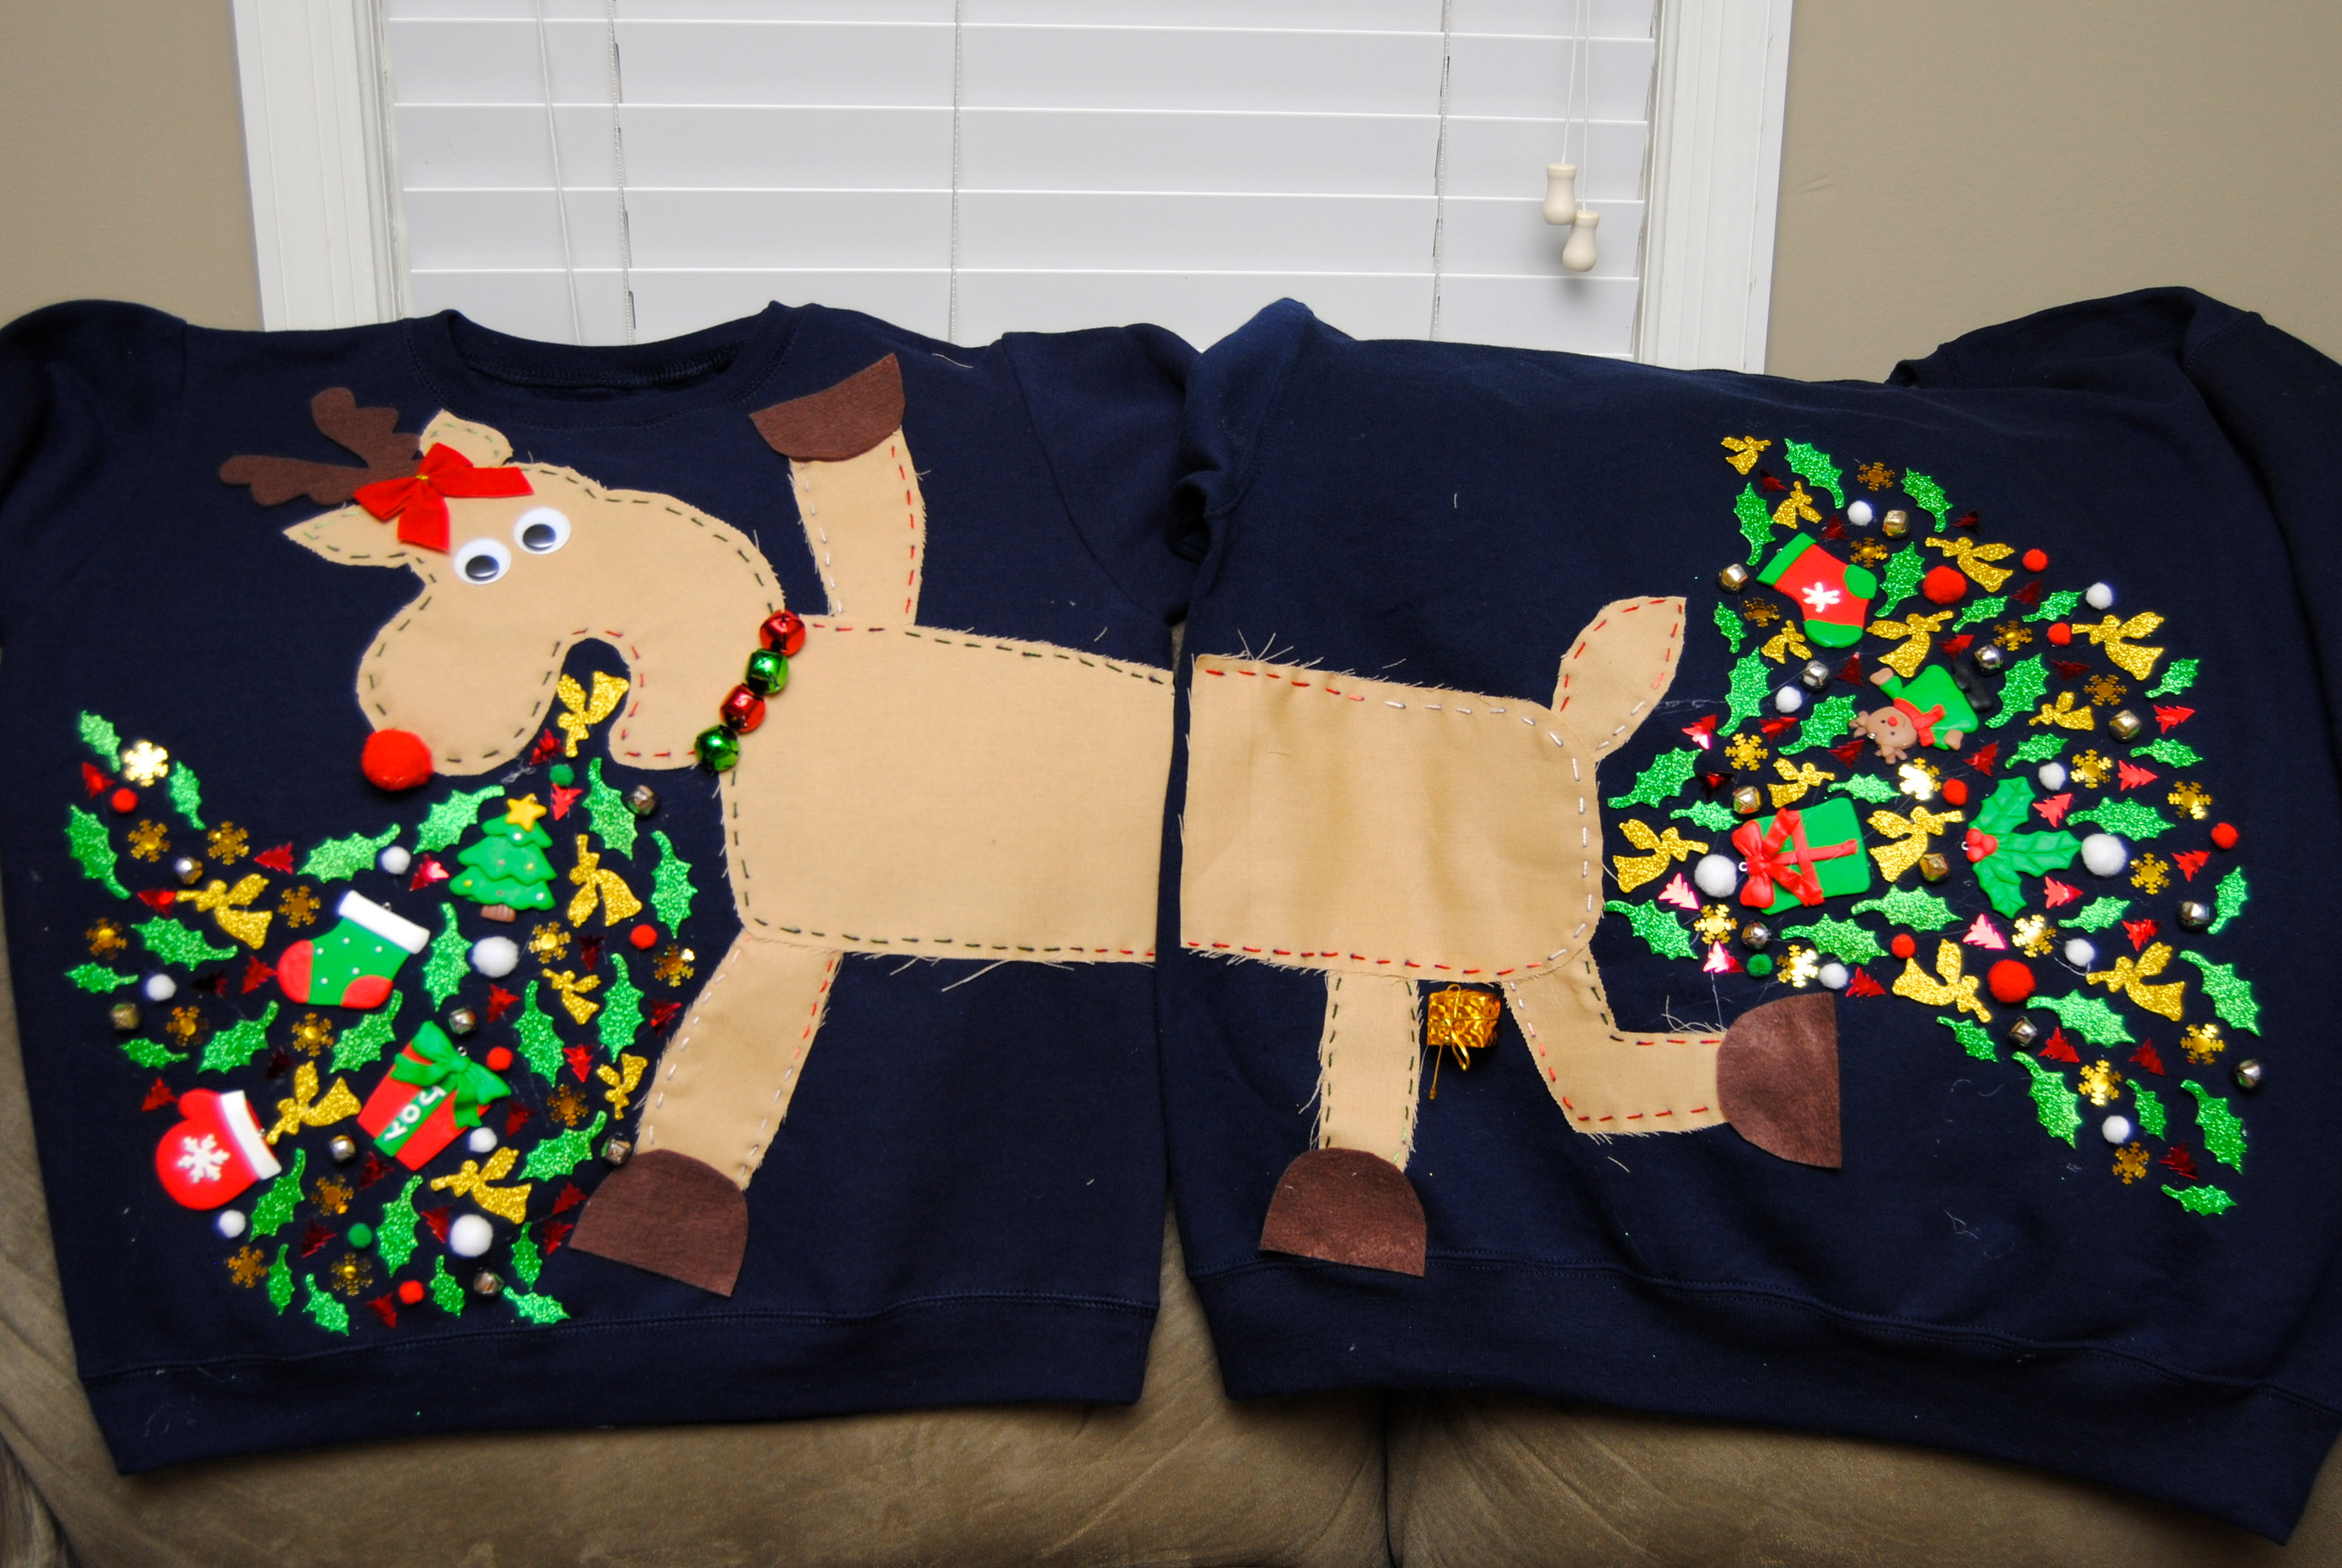 It's Ugly Christmas Sweater Time! | Biscuits 'n Crazy